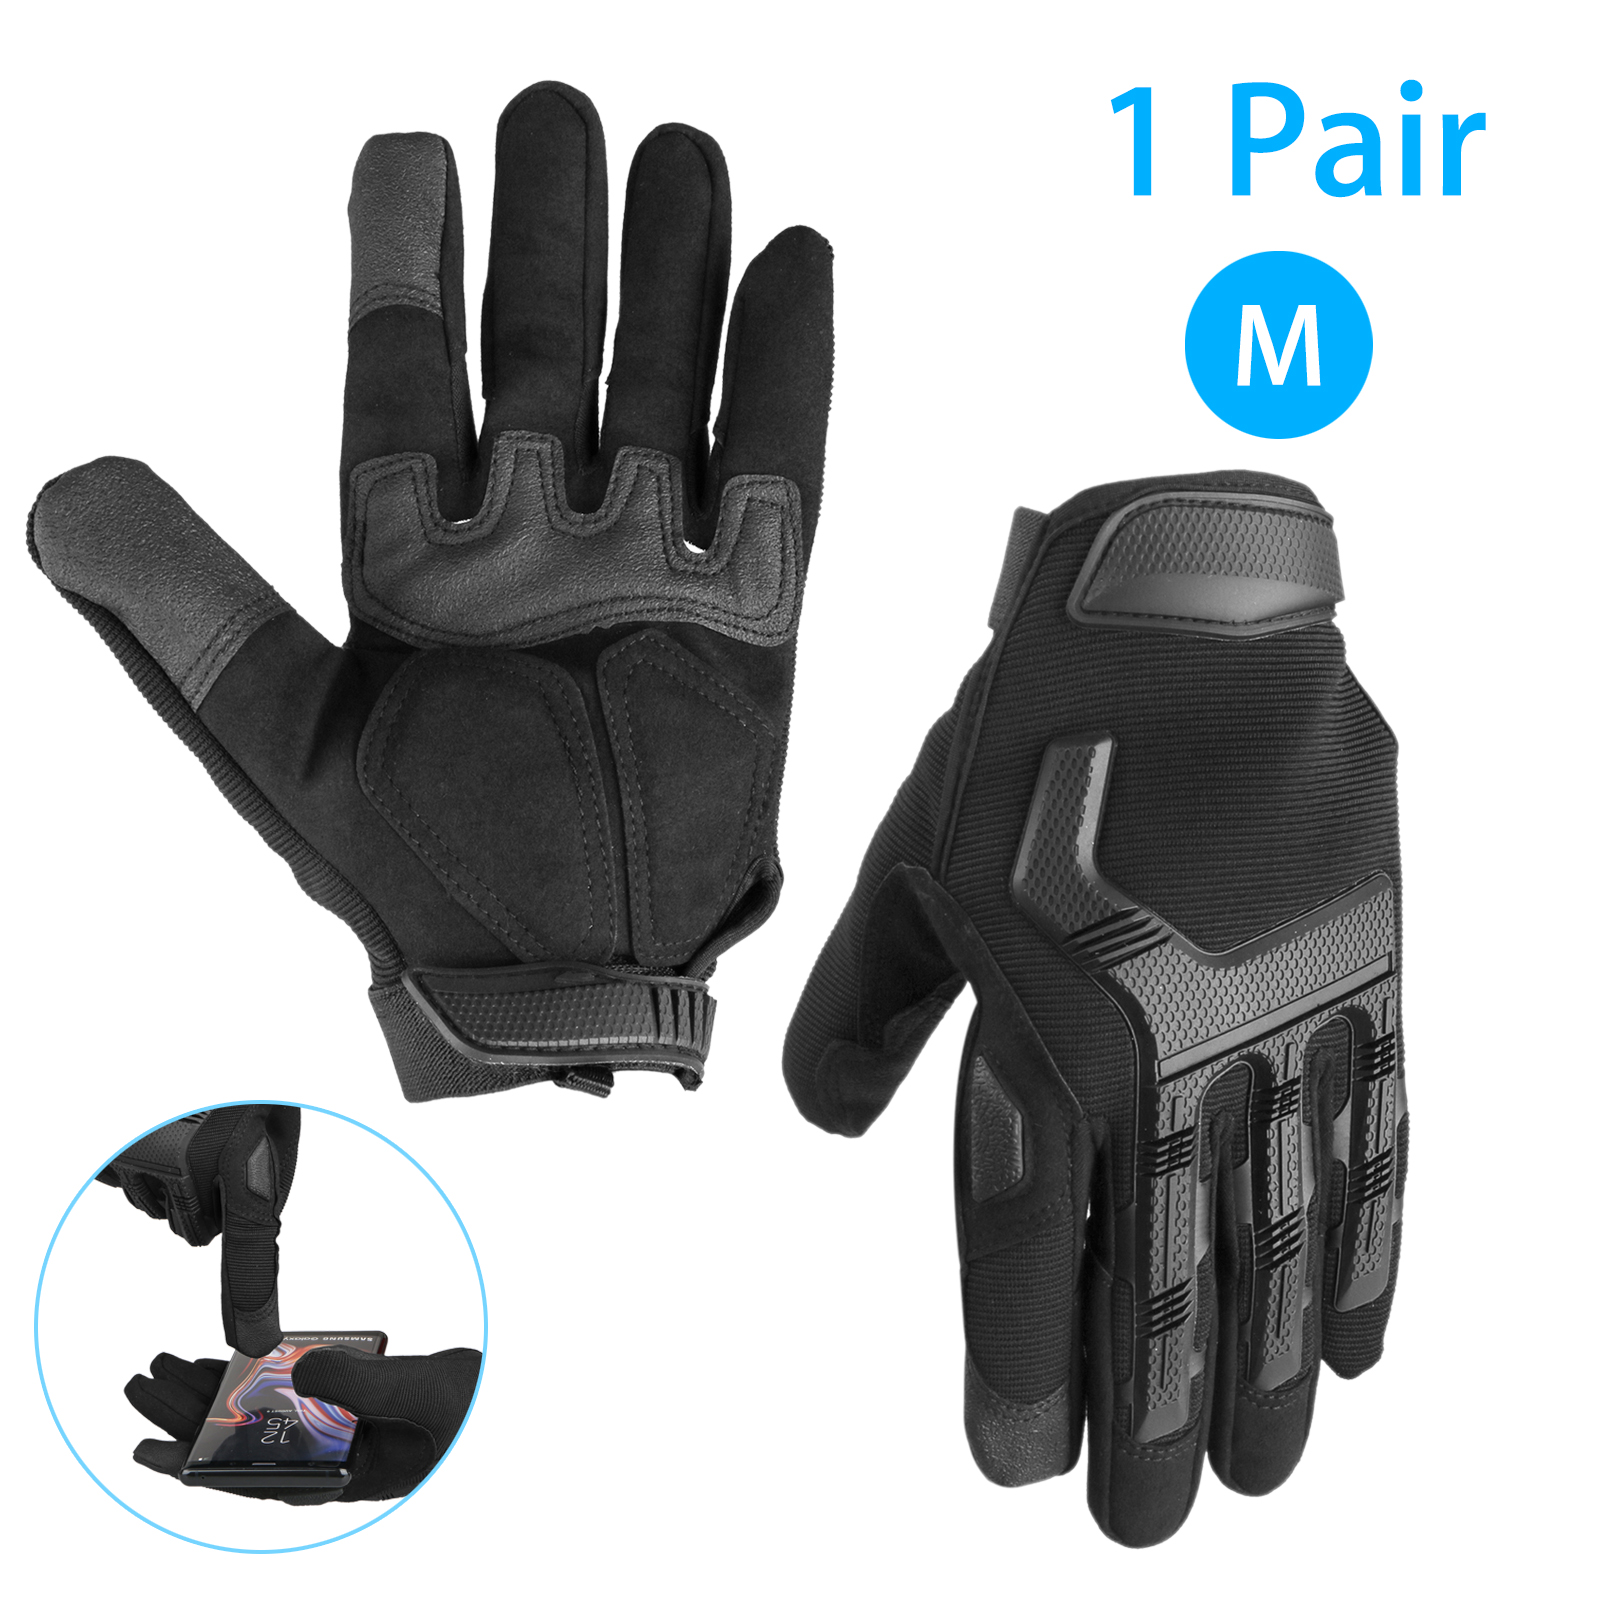 EEEKit Motorcycle Gloves Tactical Gloves with Touchscreen Finger Leather and Hard Rubber Knuckle Guard, Military Airsoft Paintball Bike Cycling Climbing Hiking Shooting Work Gloves for Men Women